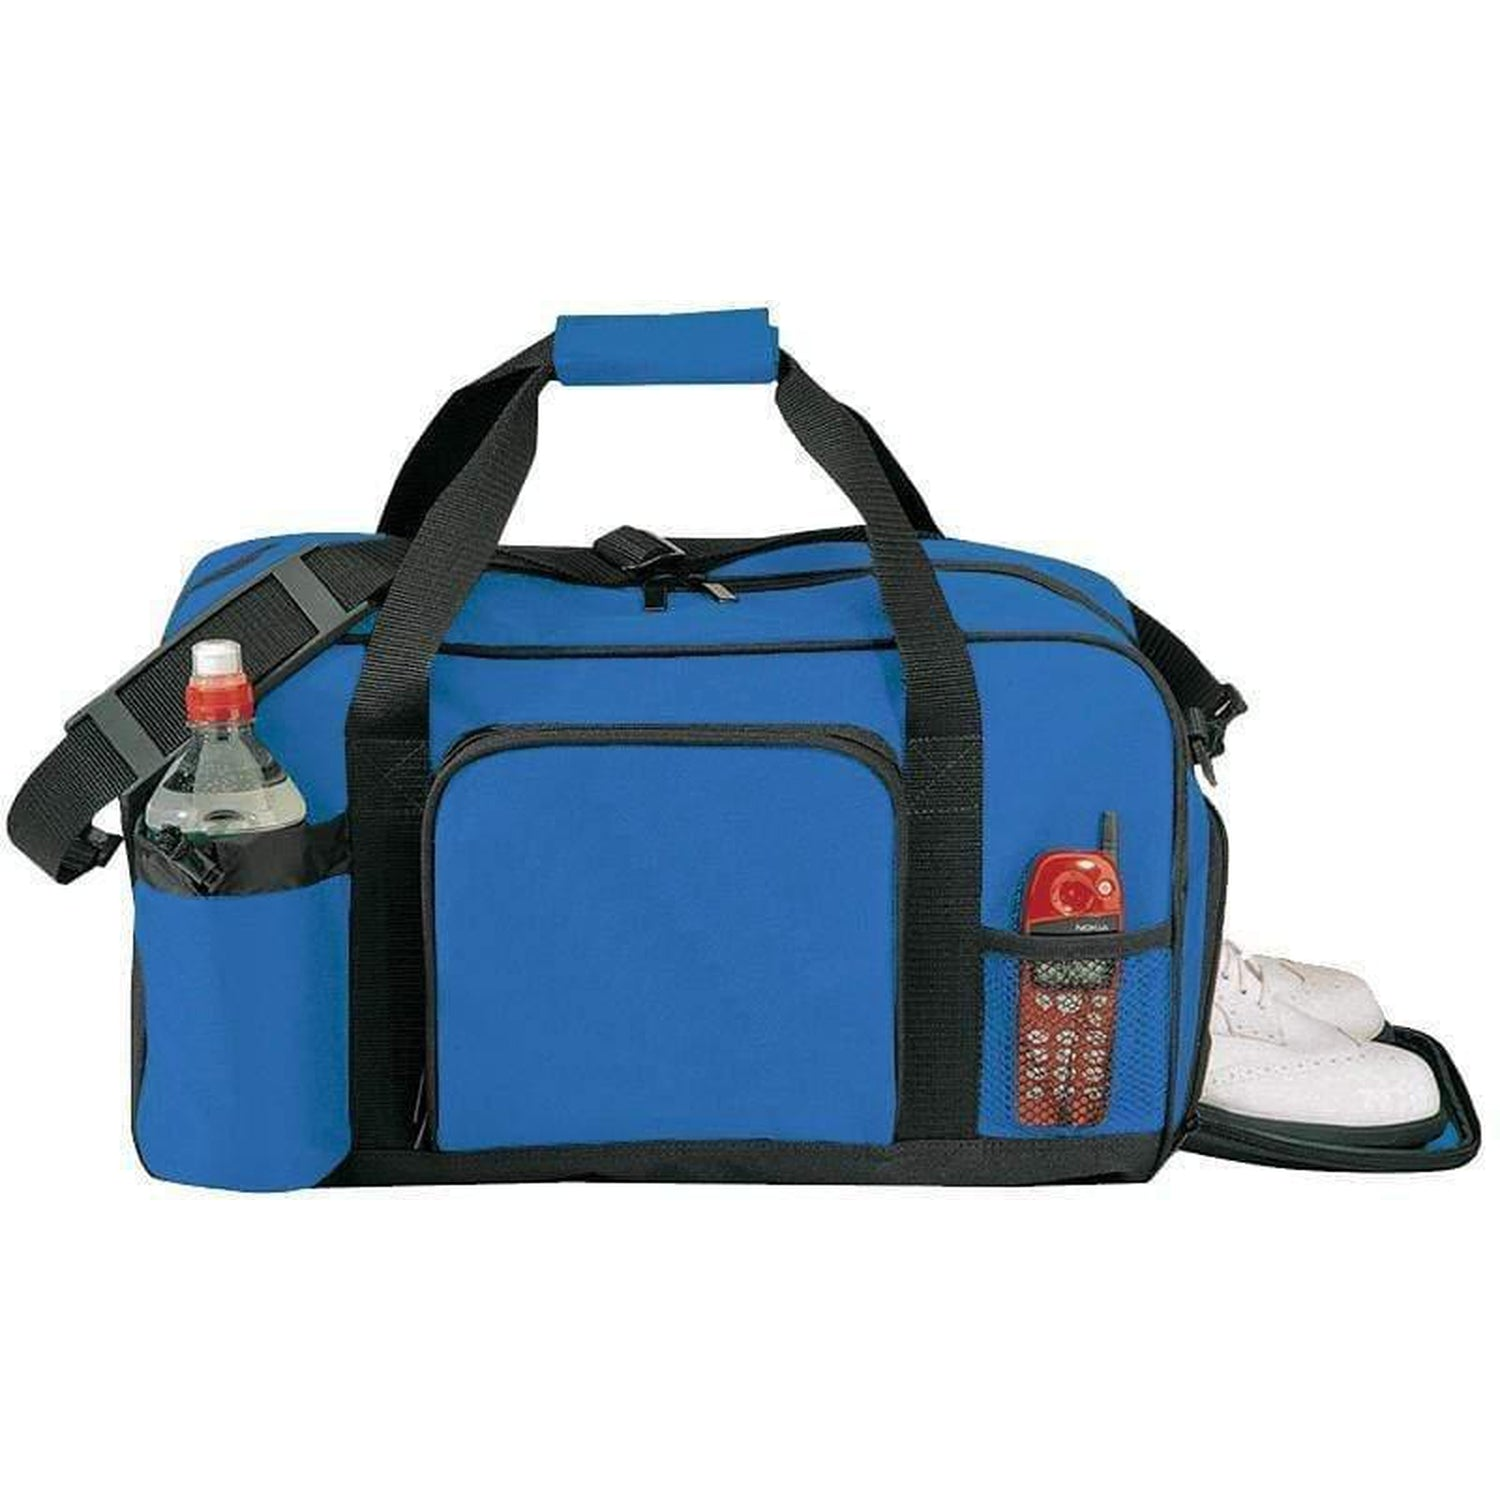 Polyester Zippered DUFFLE BAGs - 6046